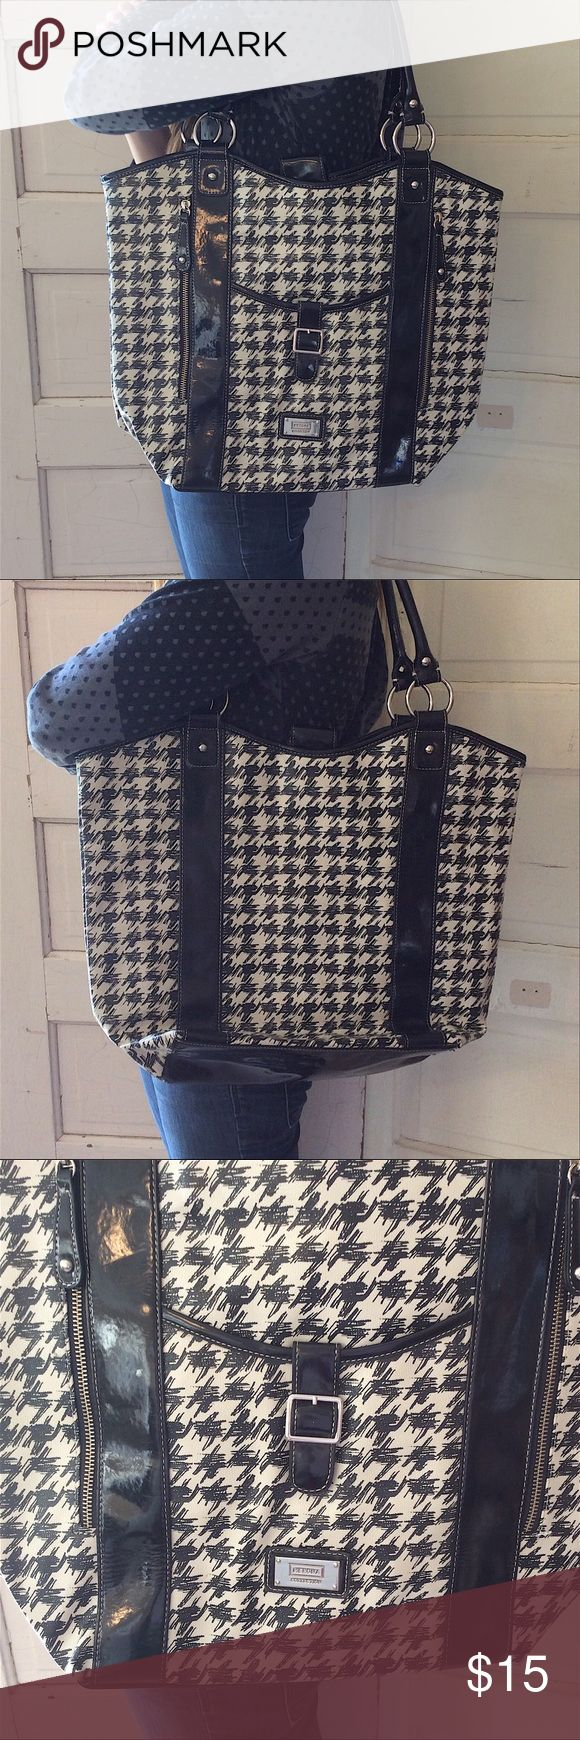 Oversized Black & Off-white Merona Tote Oversized Tote in great condition - no holes, rips or stains. Shiny black trim. Main compartment has a snap closure. Two outside zipper pockets on front. Snap pocket on front. Zippered pocket inside as well as two open pockets. Merona Bags Totes